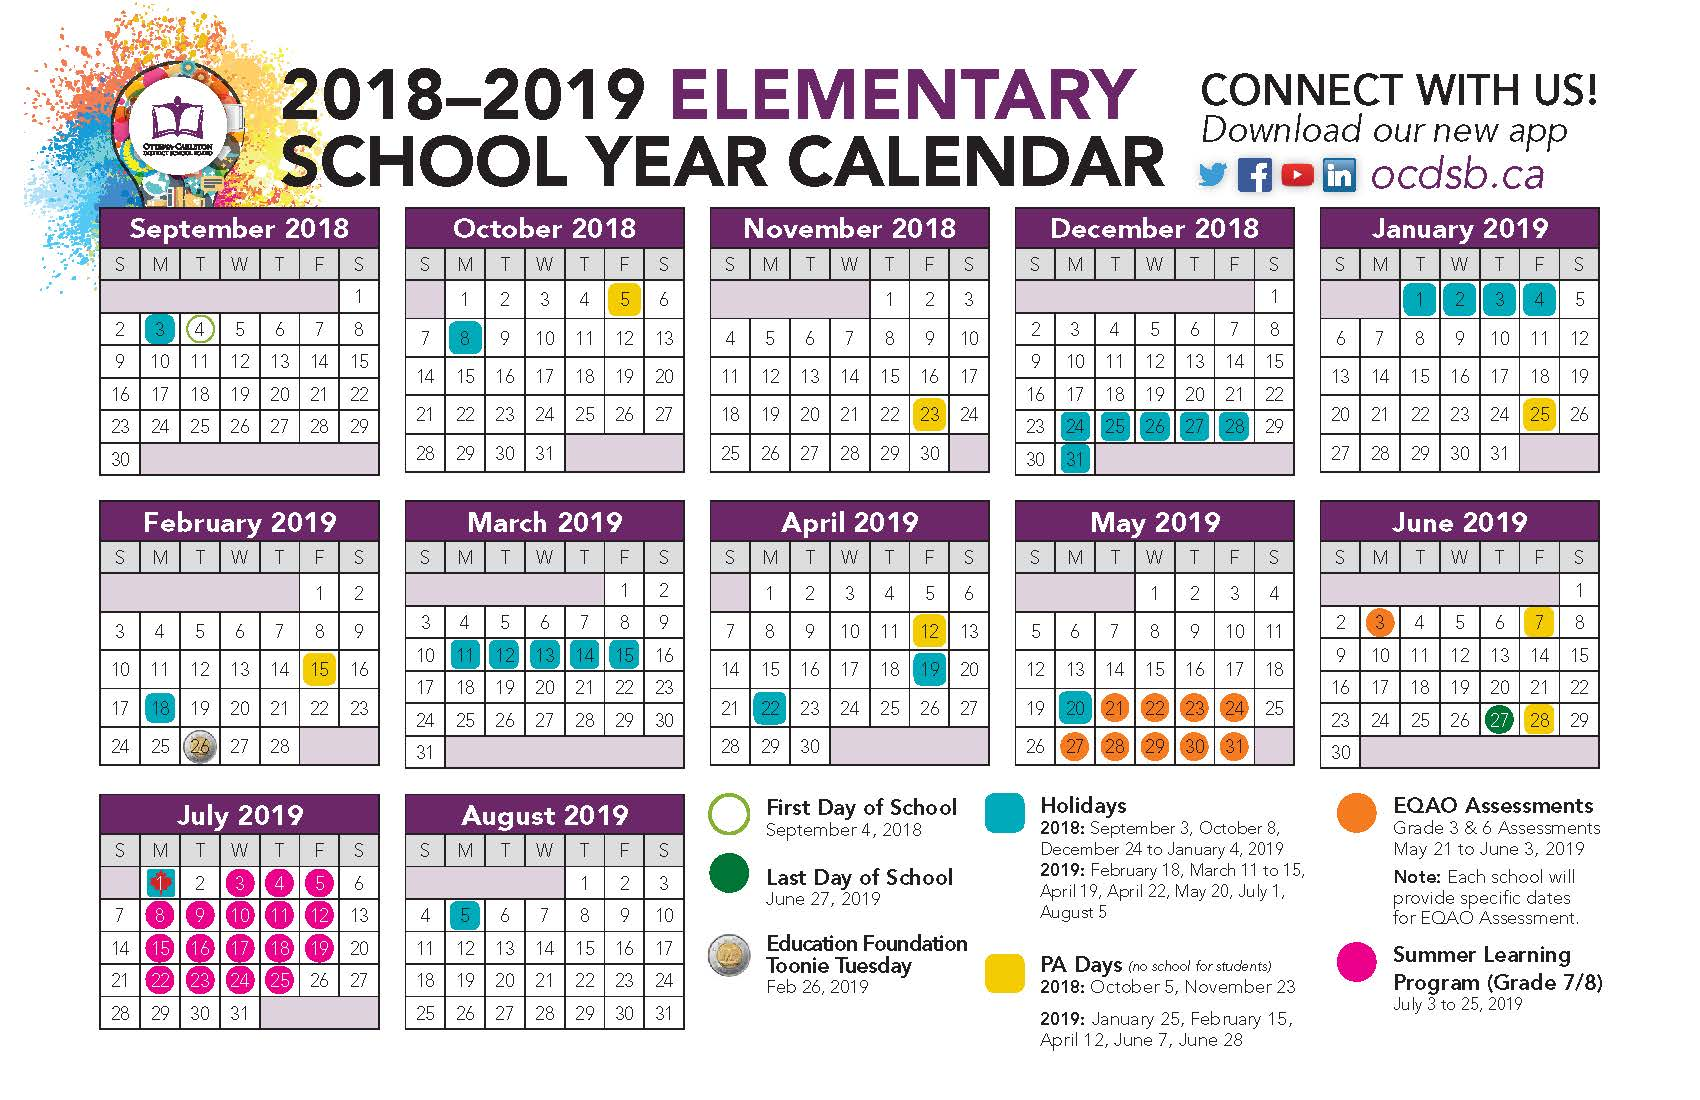 Year Calendar 2018 To 2019 With Ottawa Carleton District School Board